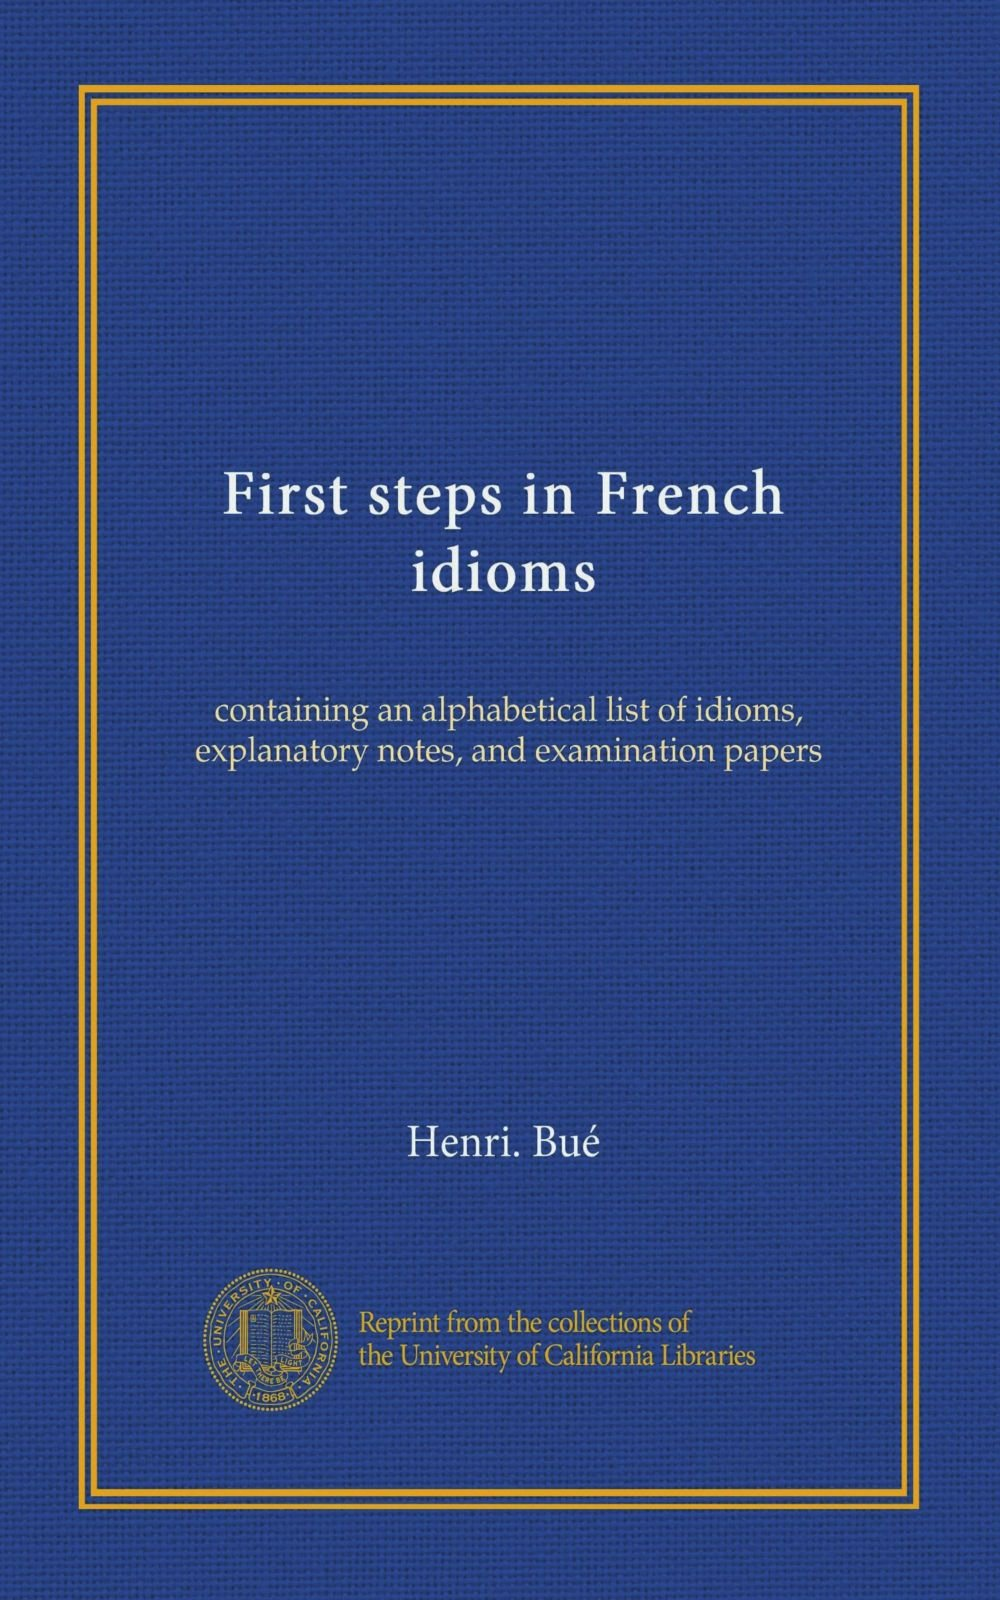 Read Online First steps in French idioms: containing an alphabetical list of idioms, explanatory notes, and examination papers ebook